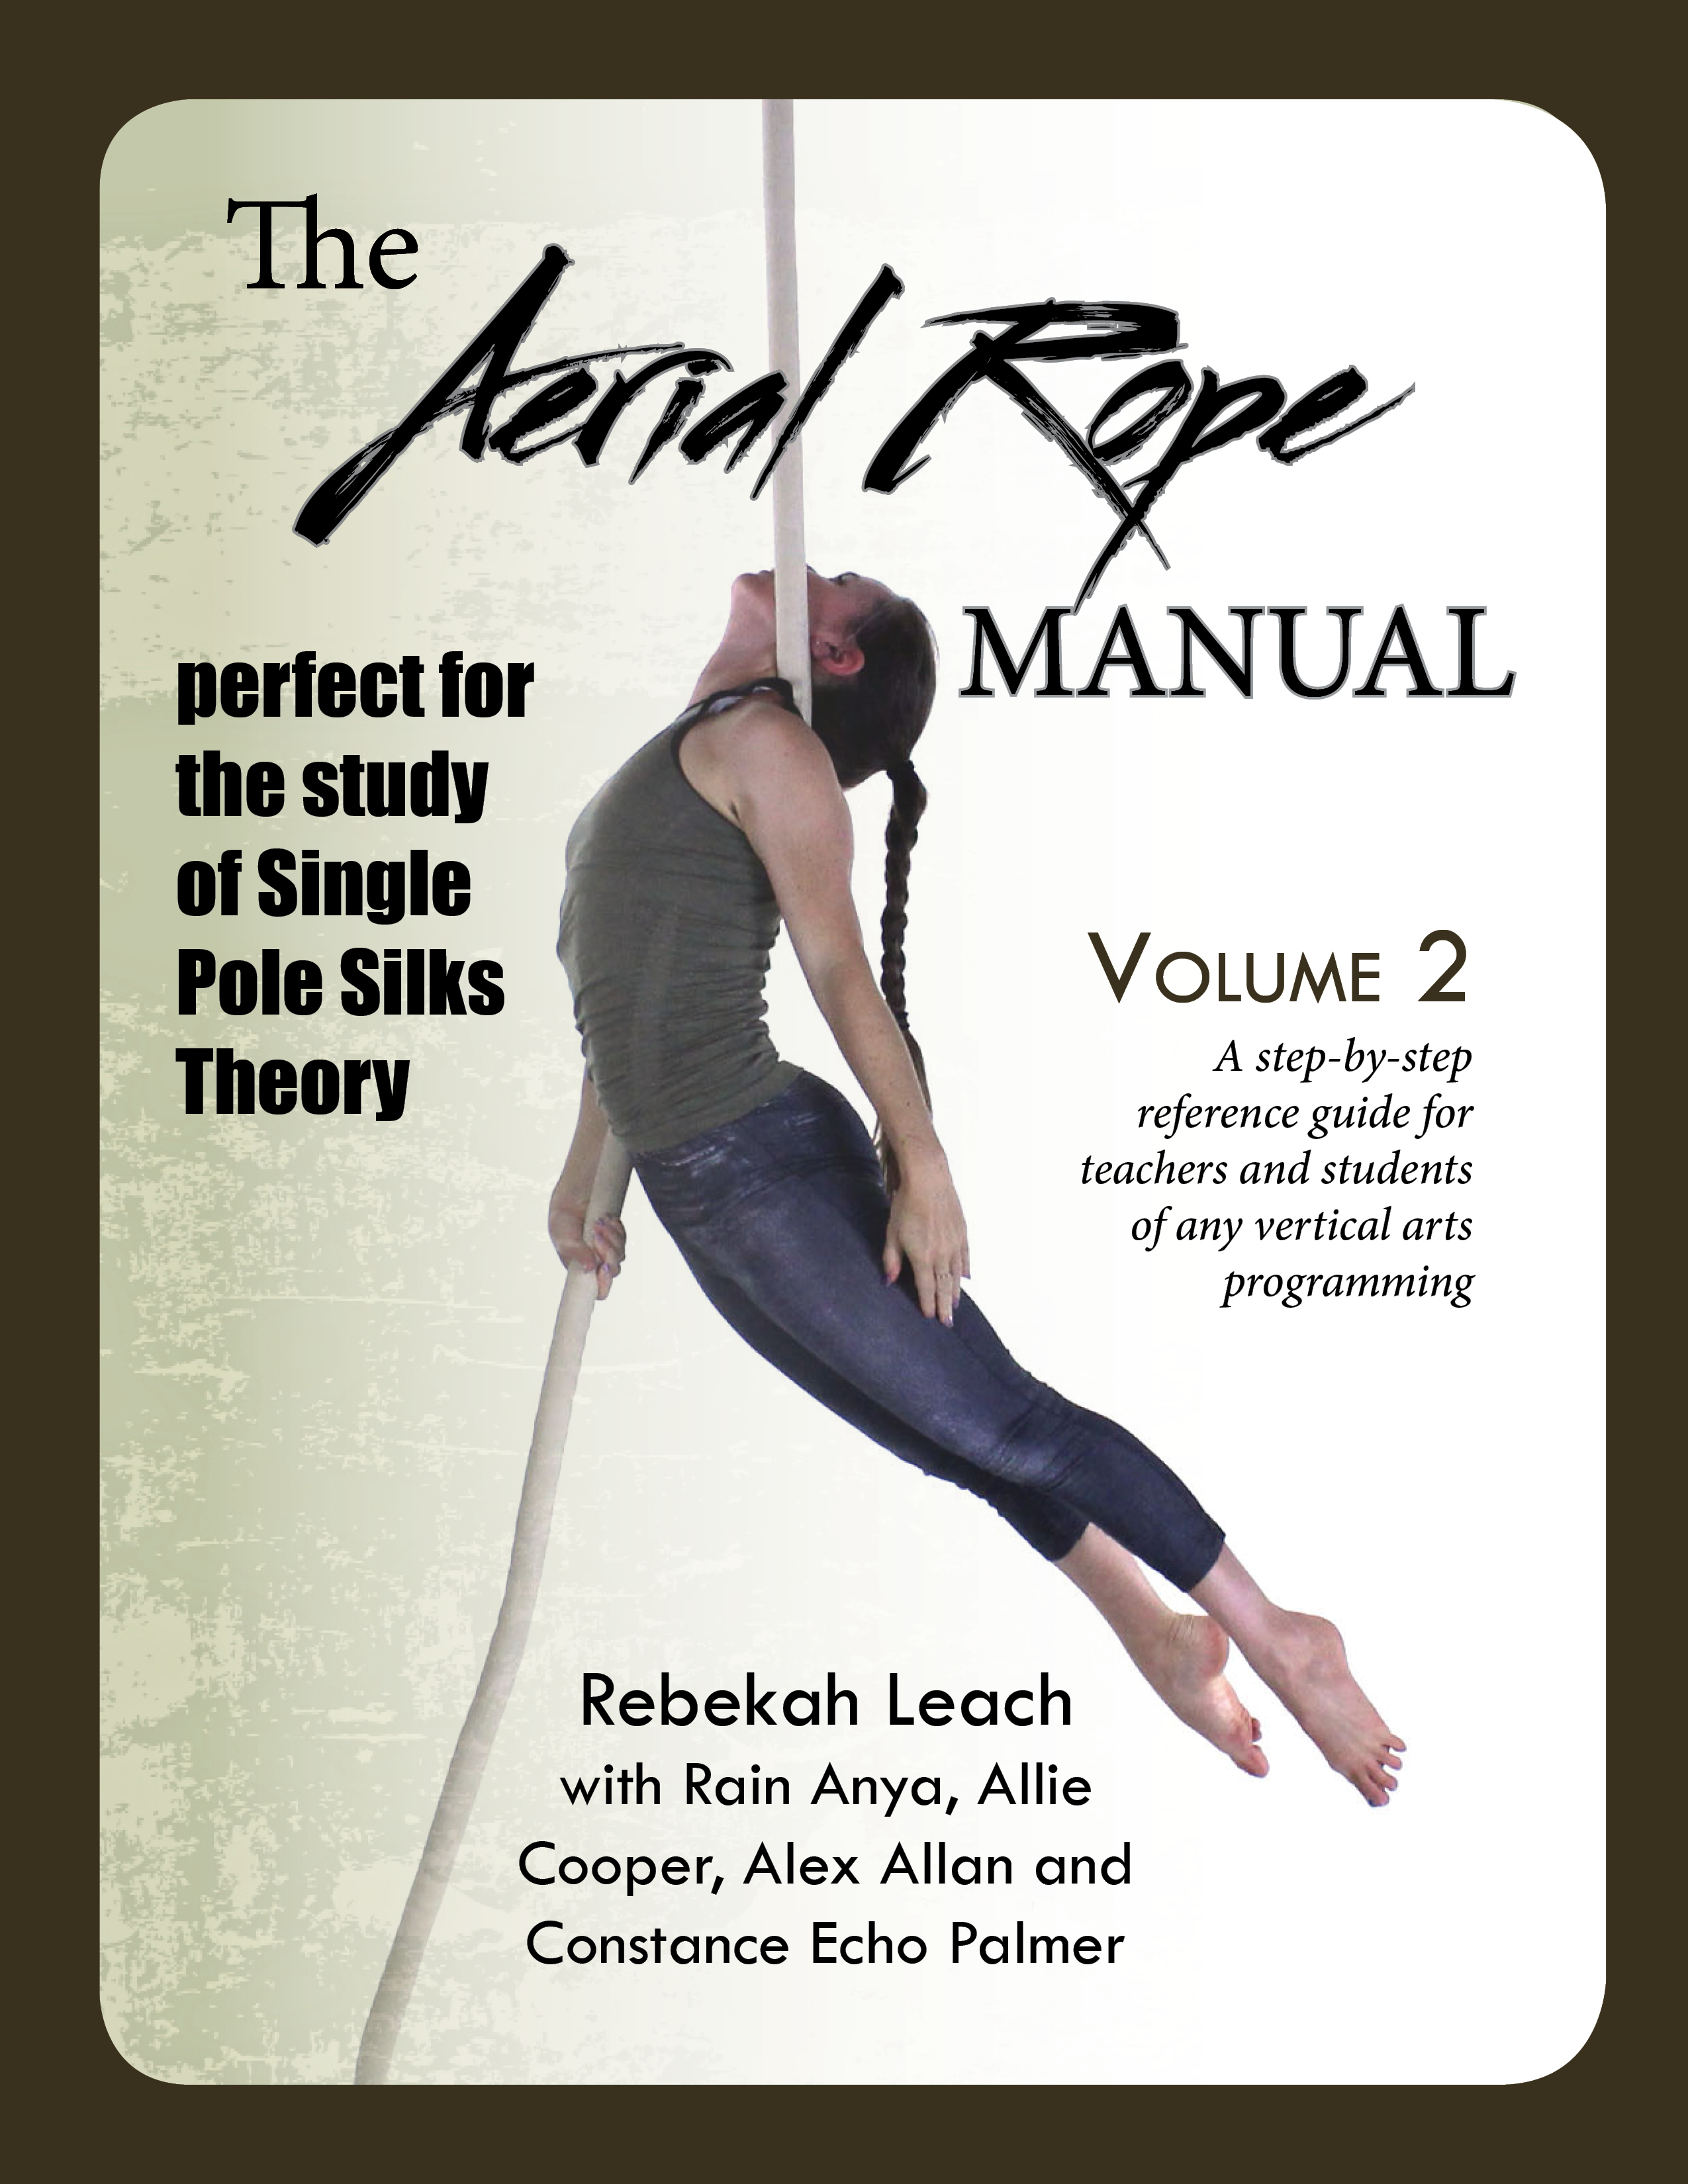 The Aerial Rope Manual Volume 2